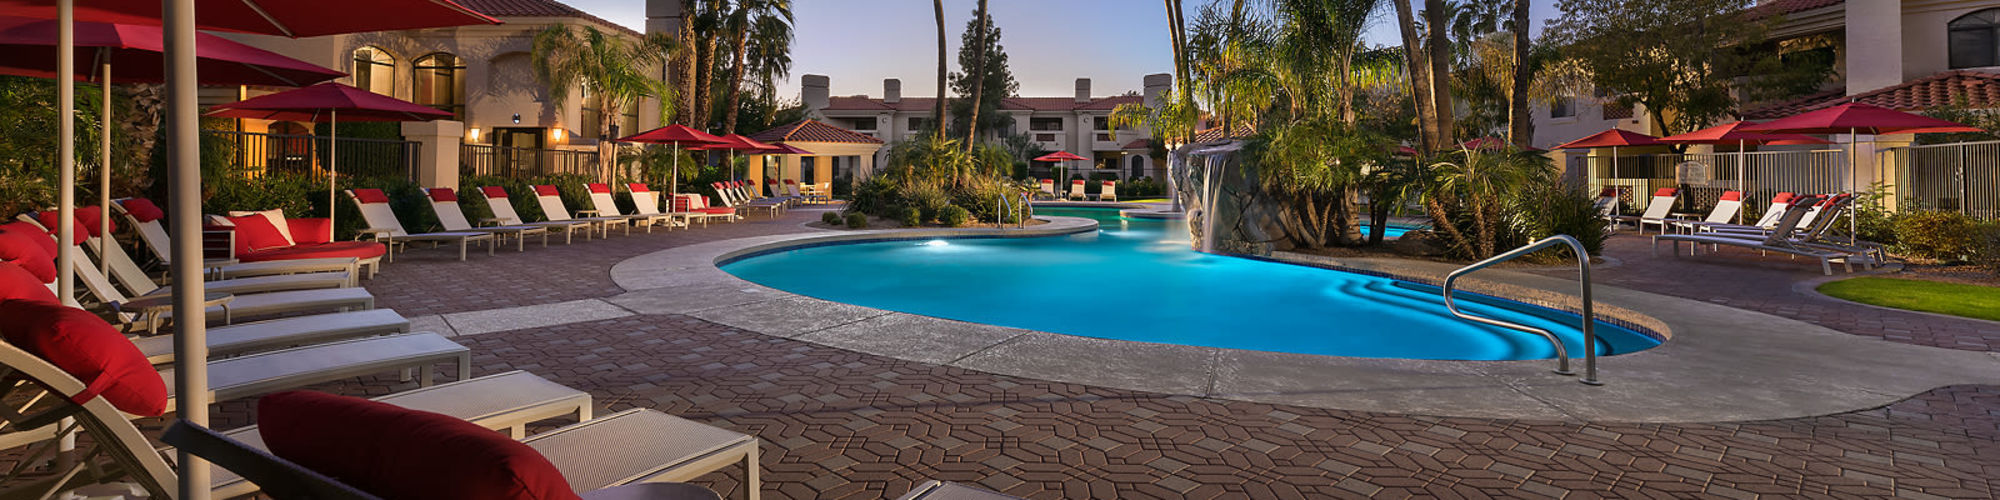 Amenities at San Palmilla in Tempe, Arizona